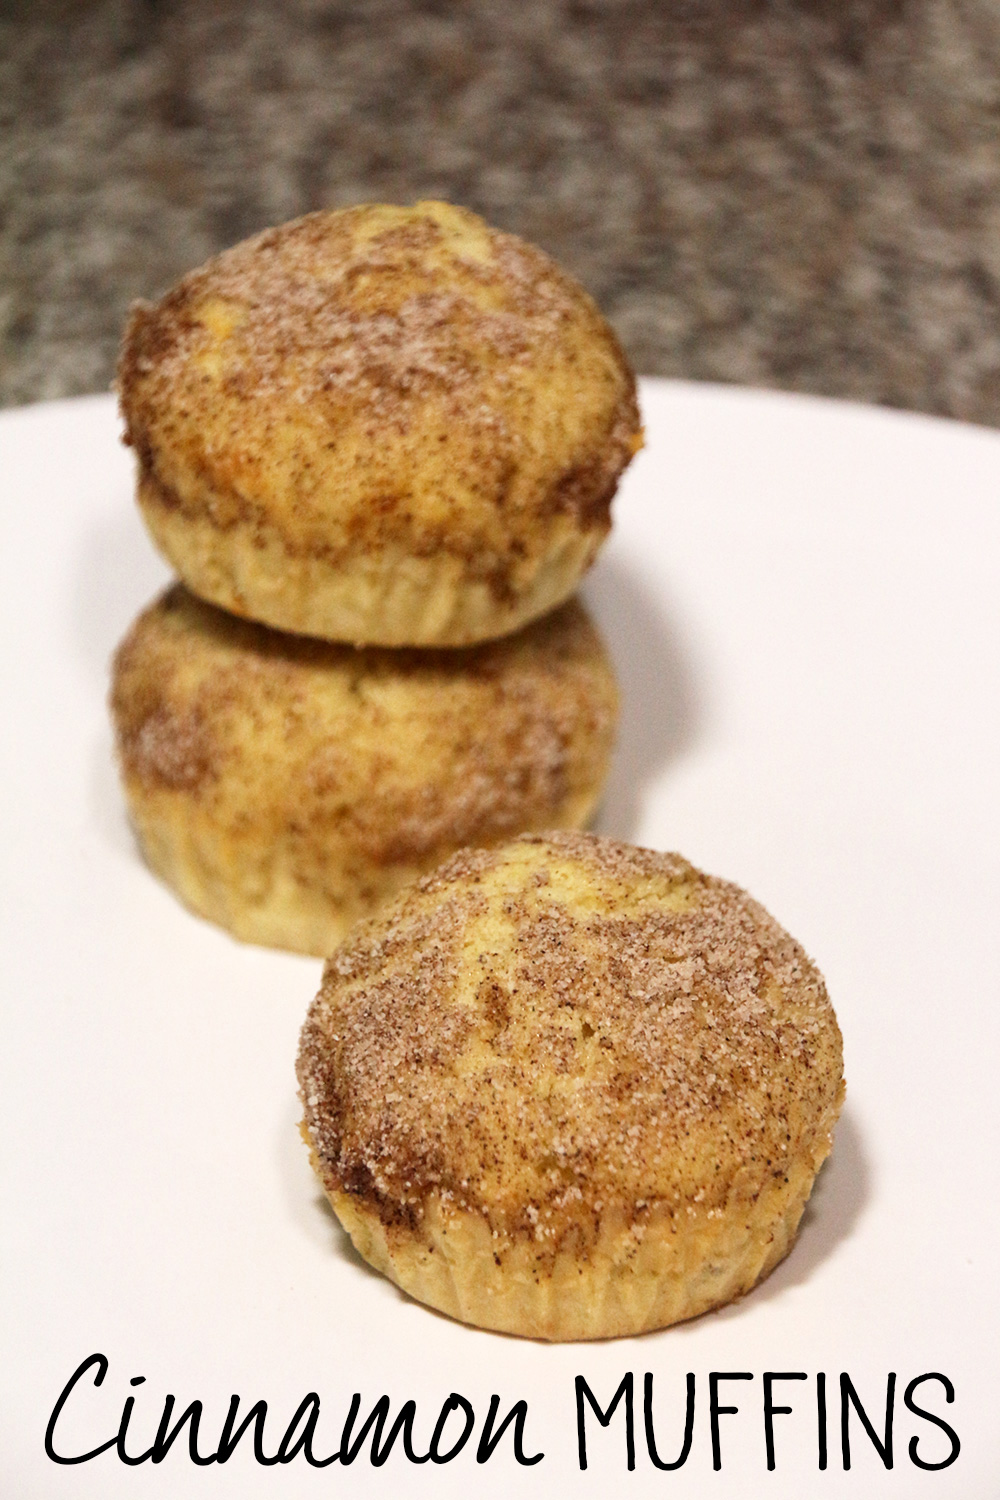 Cinnamon-Muffins-018-text